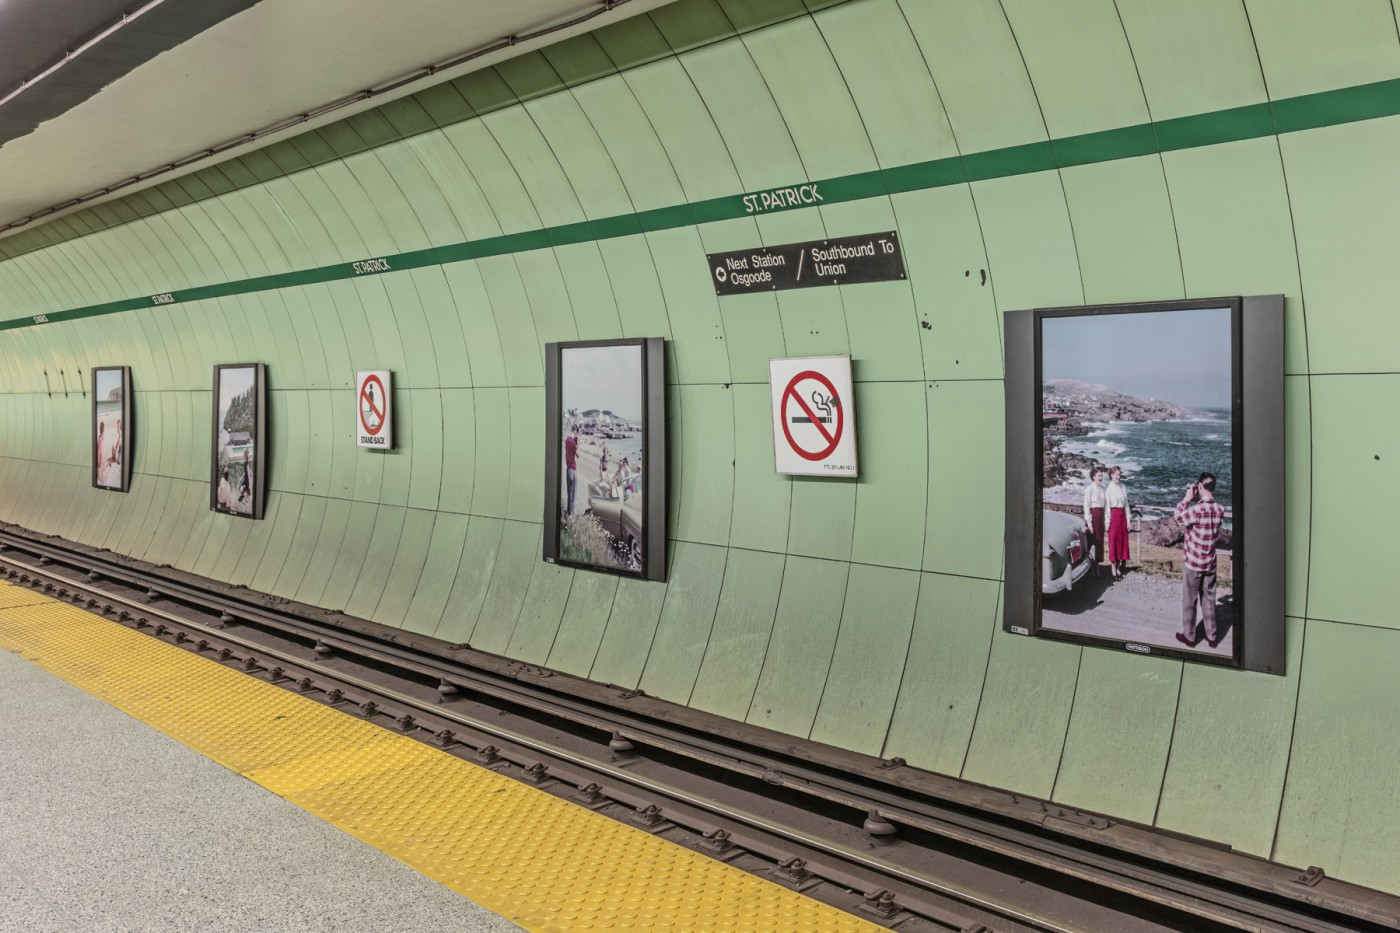 Chris Lund, </span><span><em>Canada in Kodachrome: Imaging Pleasure and Leisure</em>, </span><span>Installation view at St. Patrick Subway Station, 2017. Photo by Toni Hafkenscheid.